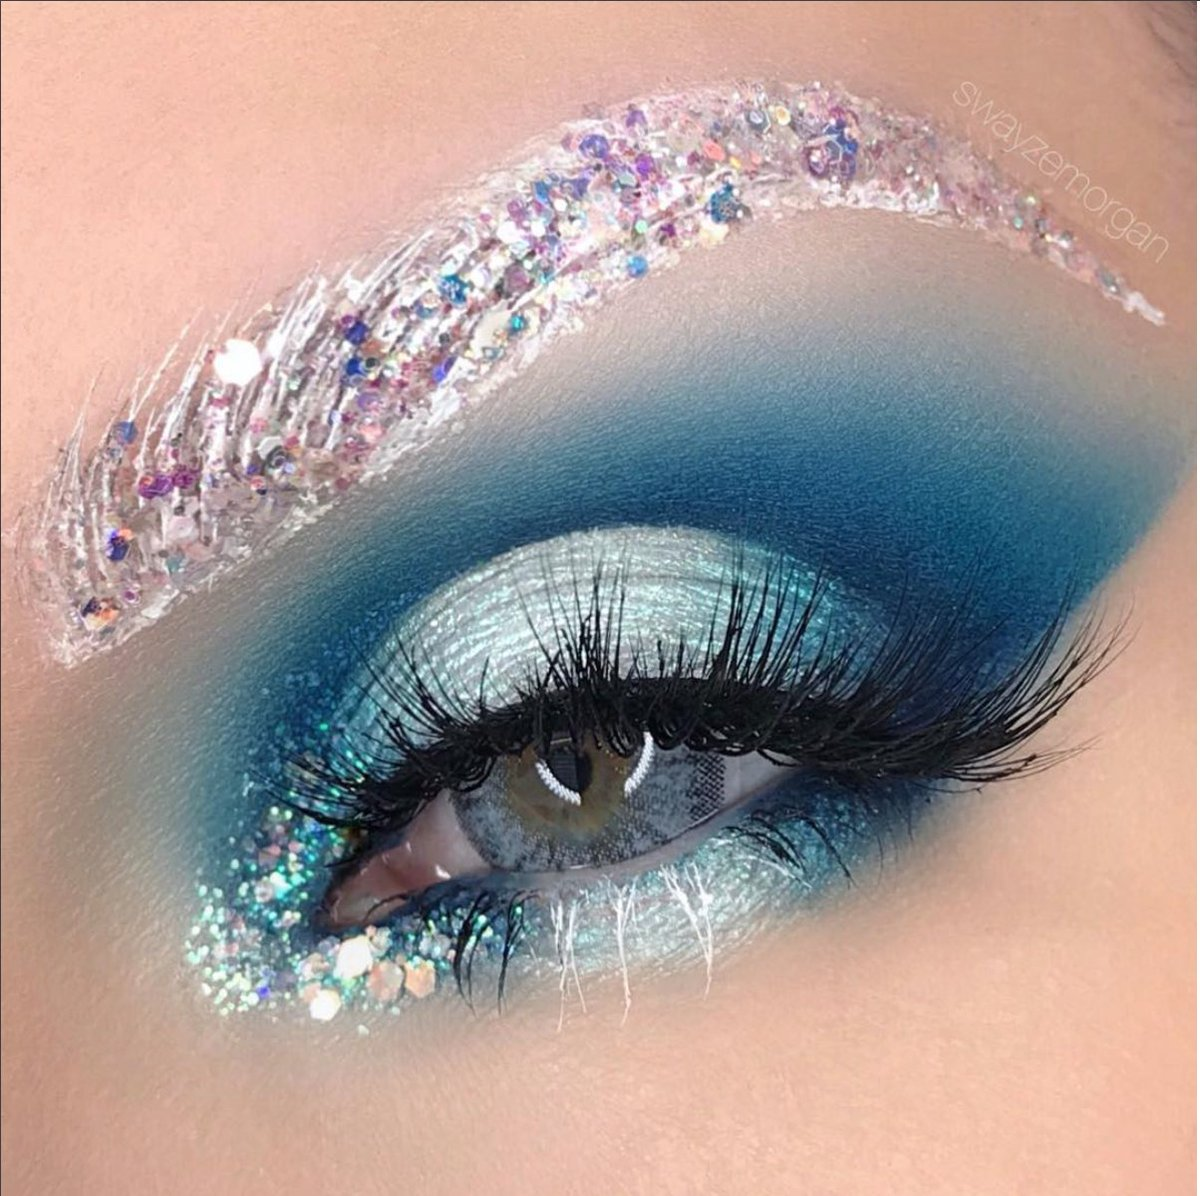 bh cosmetics on twitter wintery blue vibes like whoa we 39 ve got the chills from the. Black Bedroom Furniture Sets. Home Design Ideas